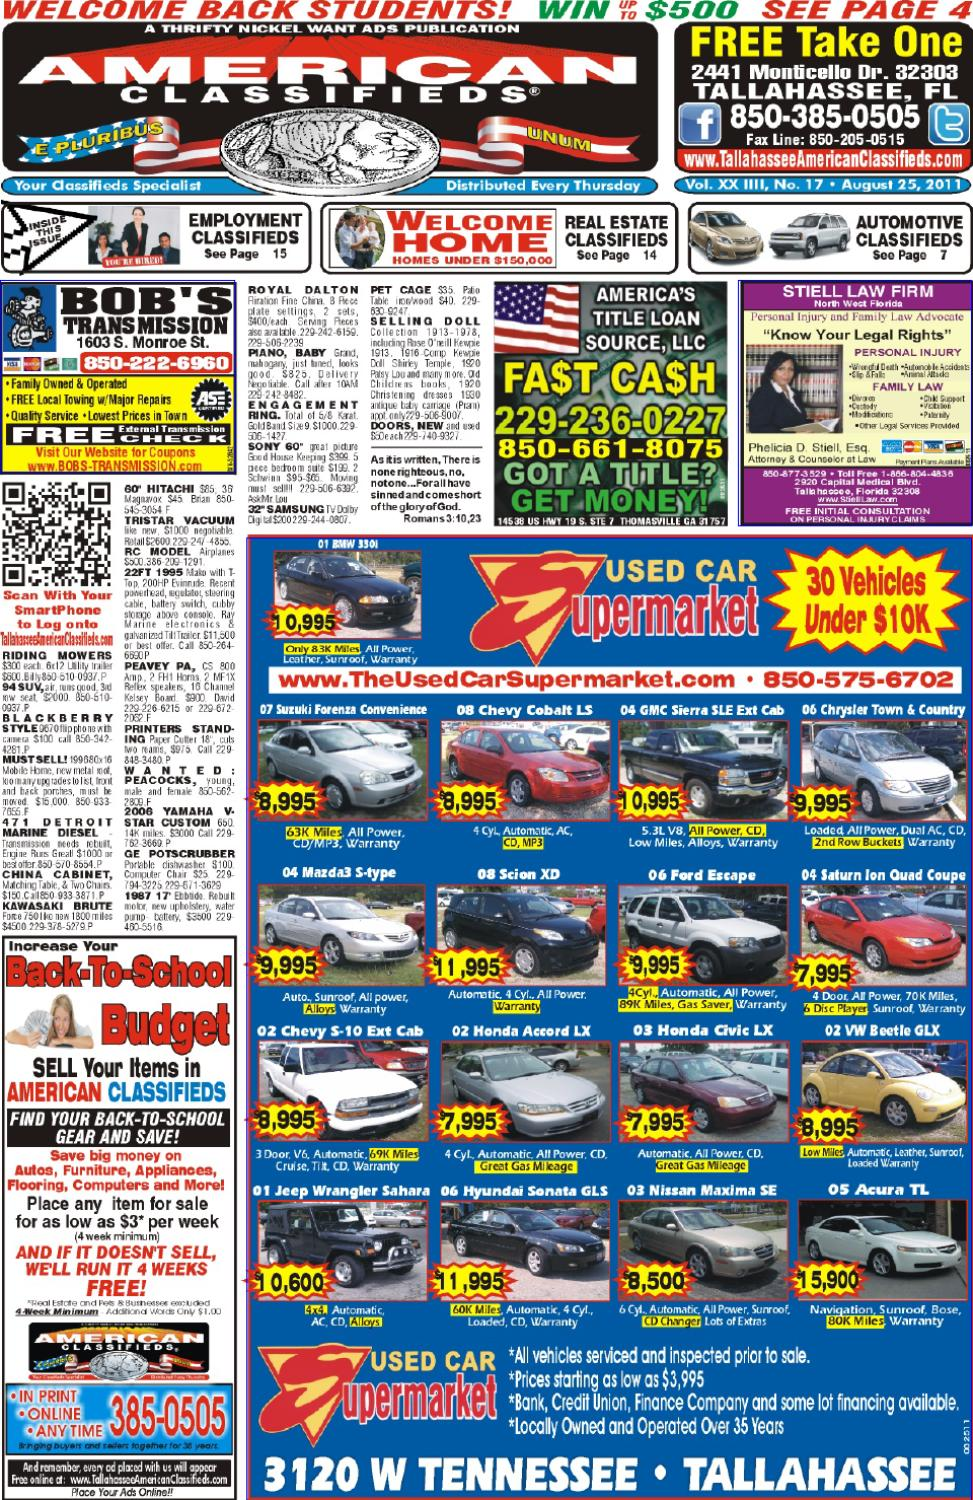 Tallahassee american classifieds issue 08 25 11 by - Craigslist tallahassee farm and garden ...